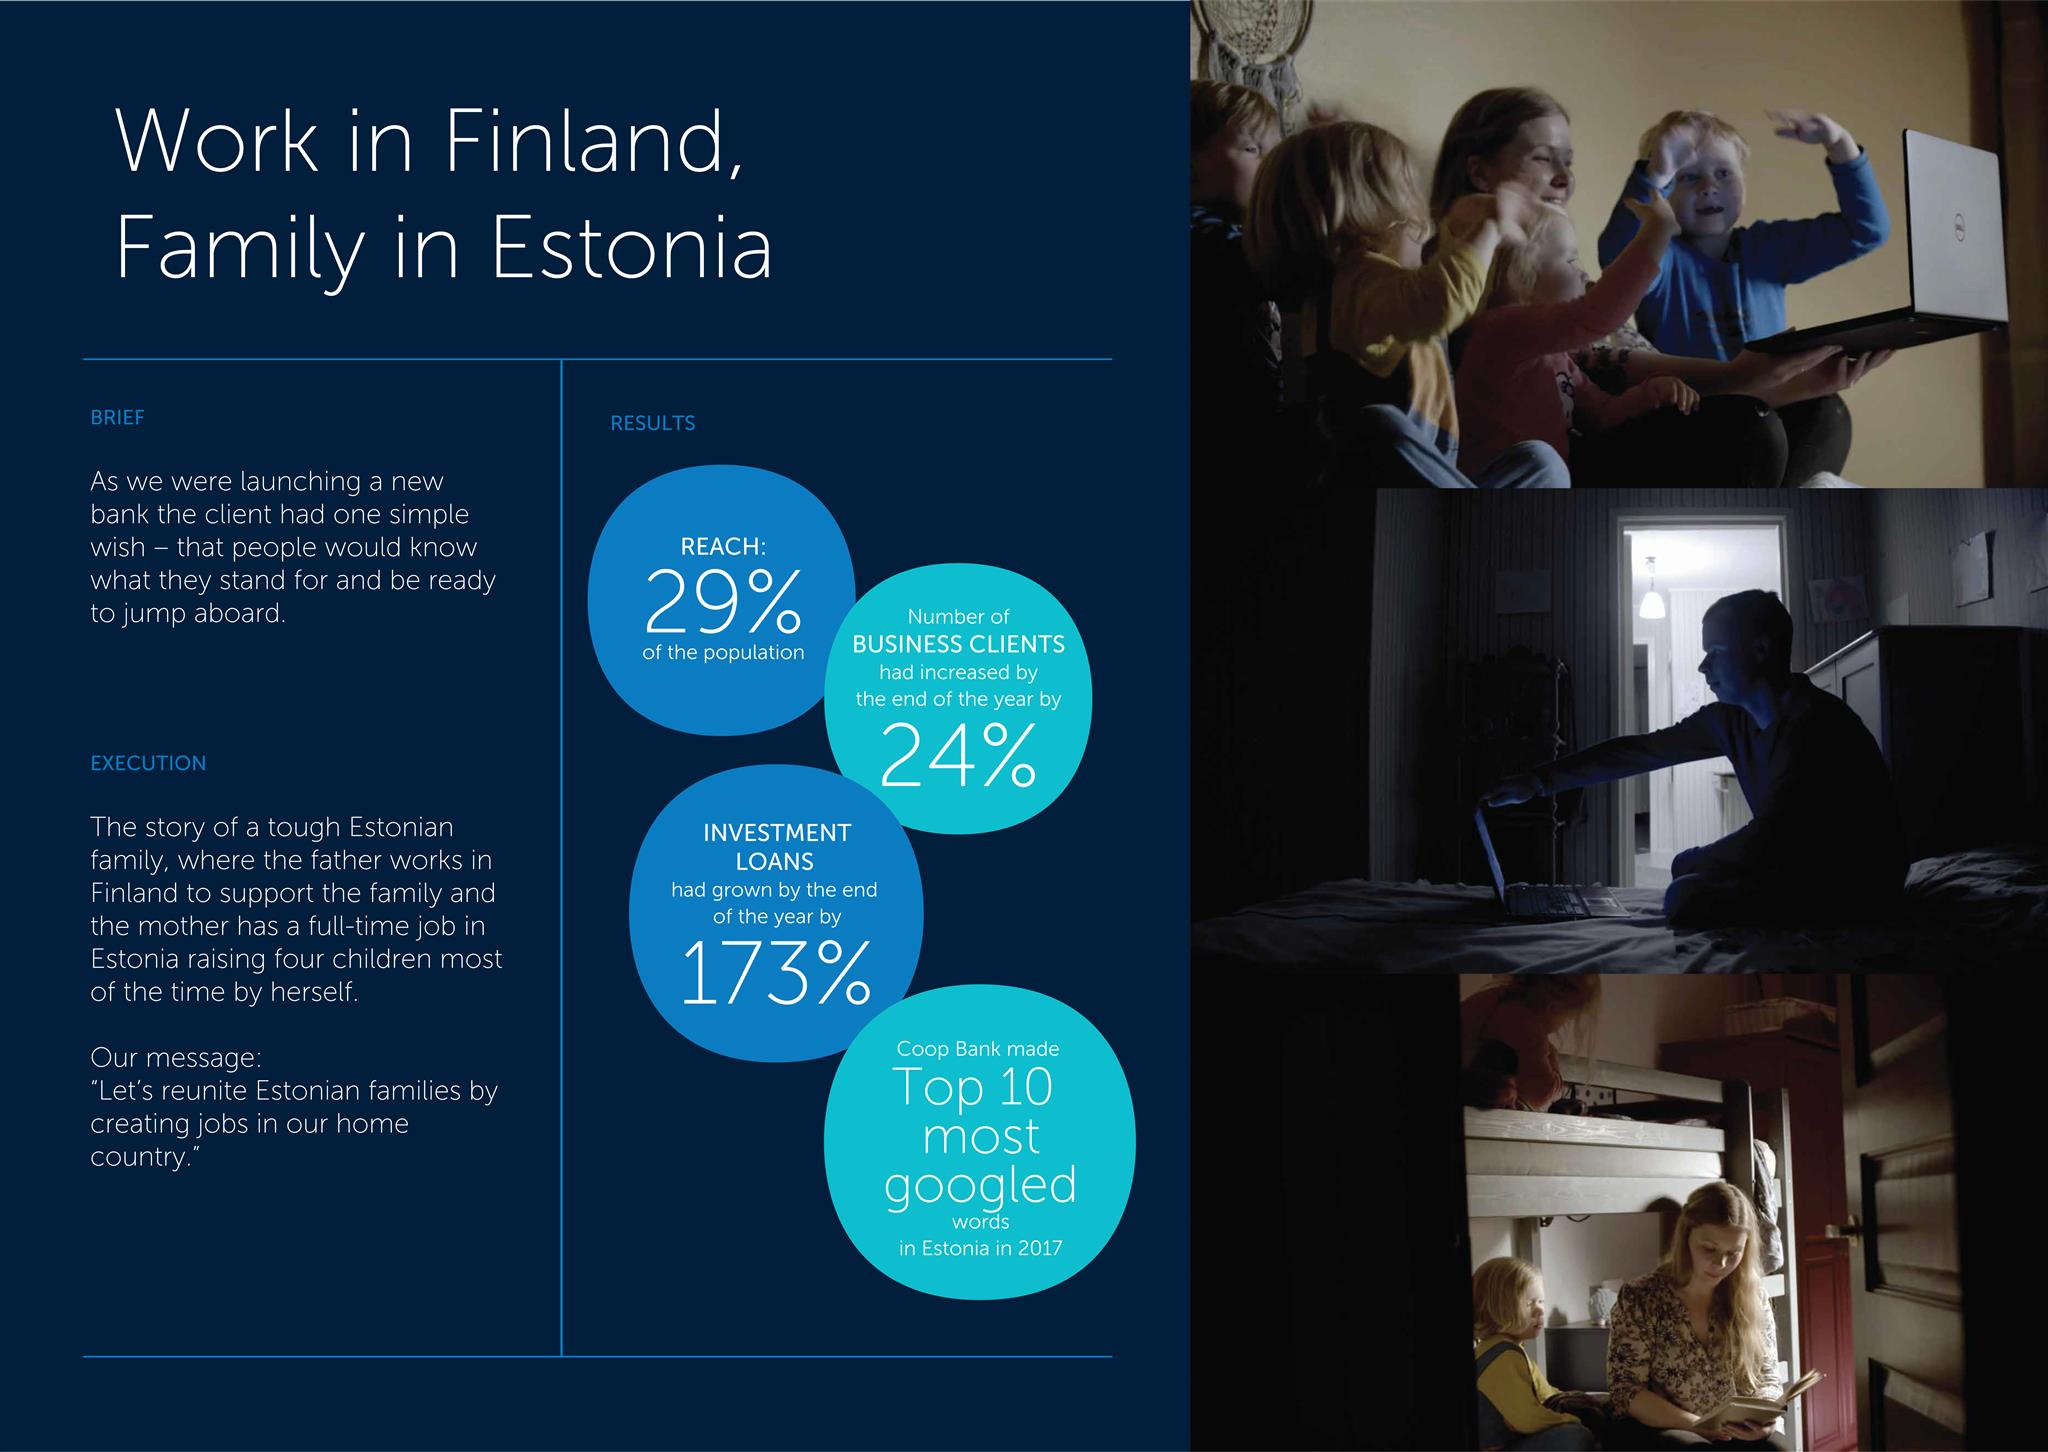 Work_in_Finland__Family_in_Estonia.jpg